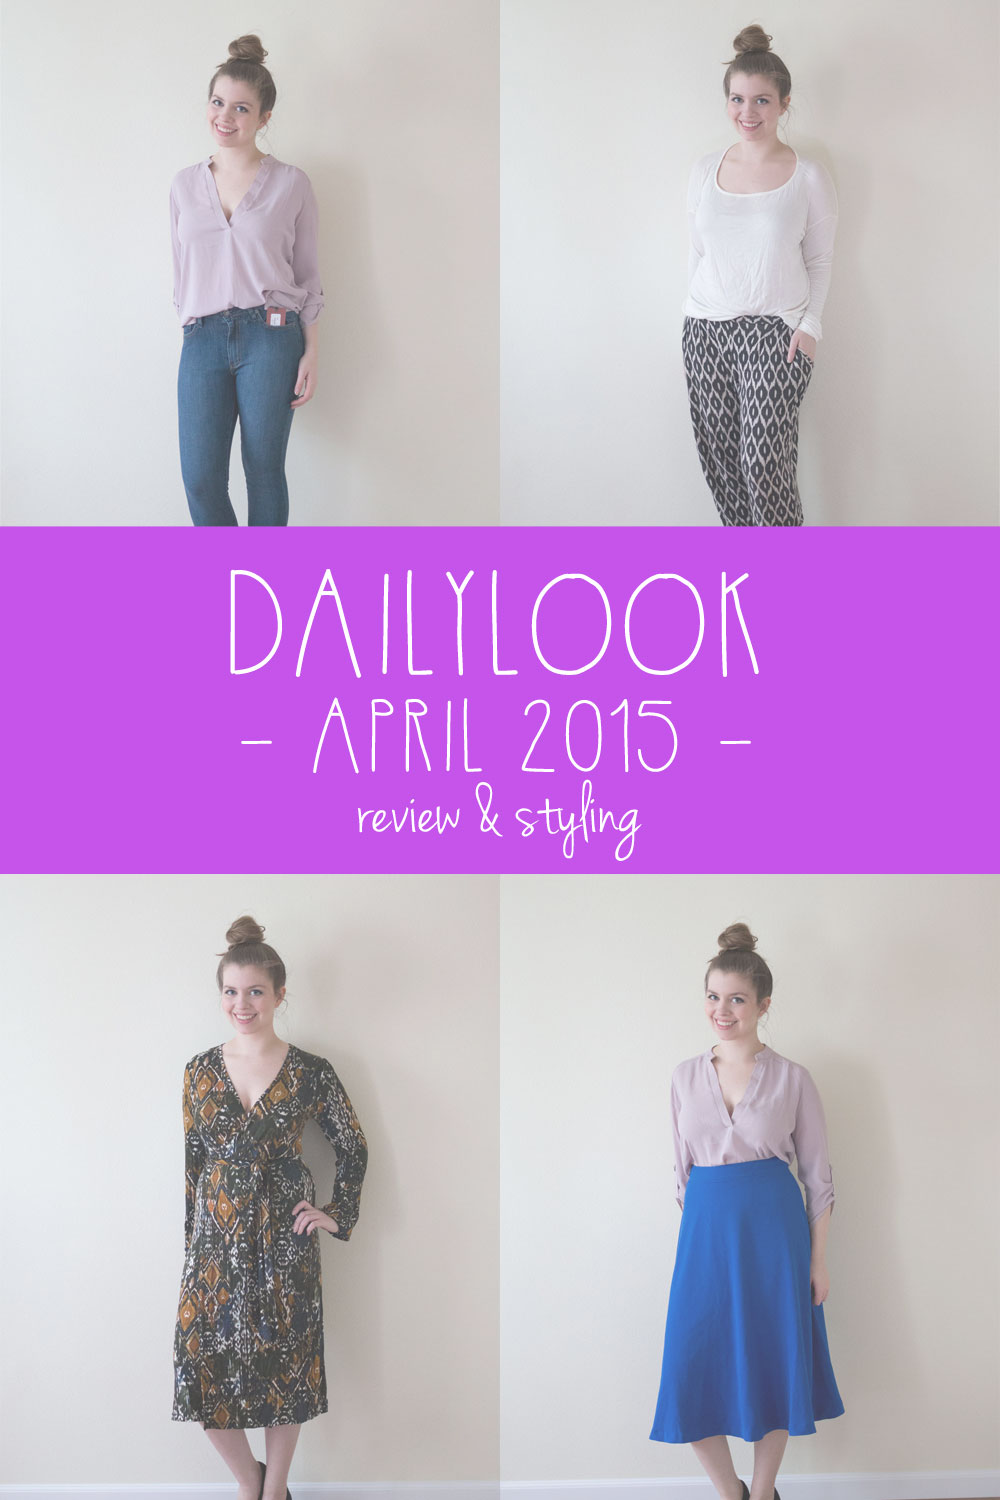 DailyLook Elite Box April 2015 Review & Styling / hellorigby seattle fashion and lifestyle blog